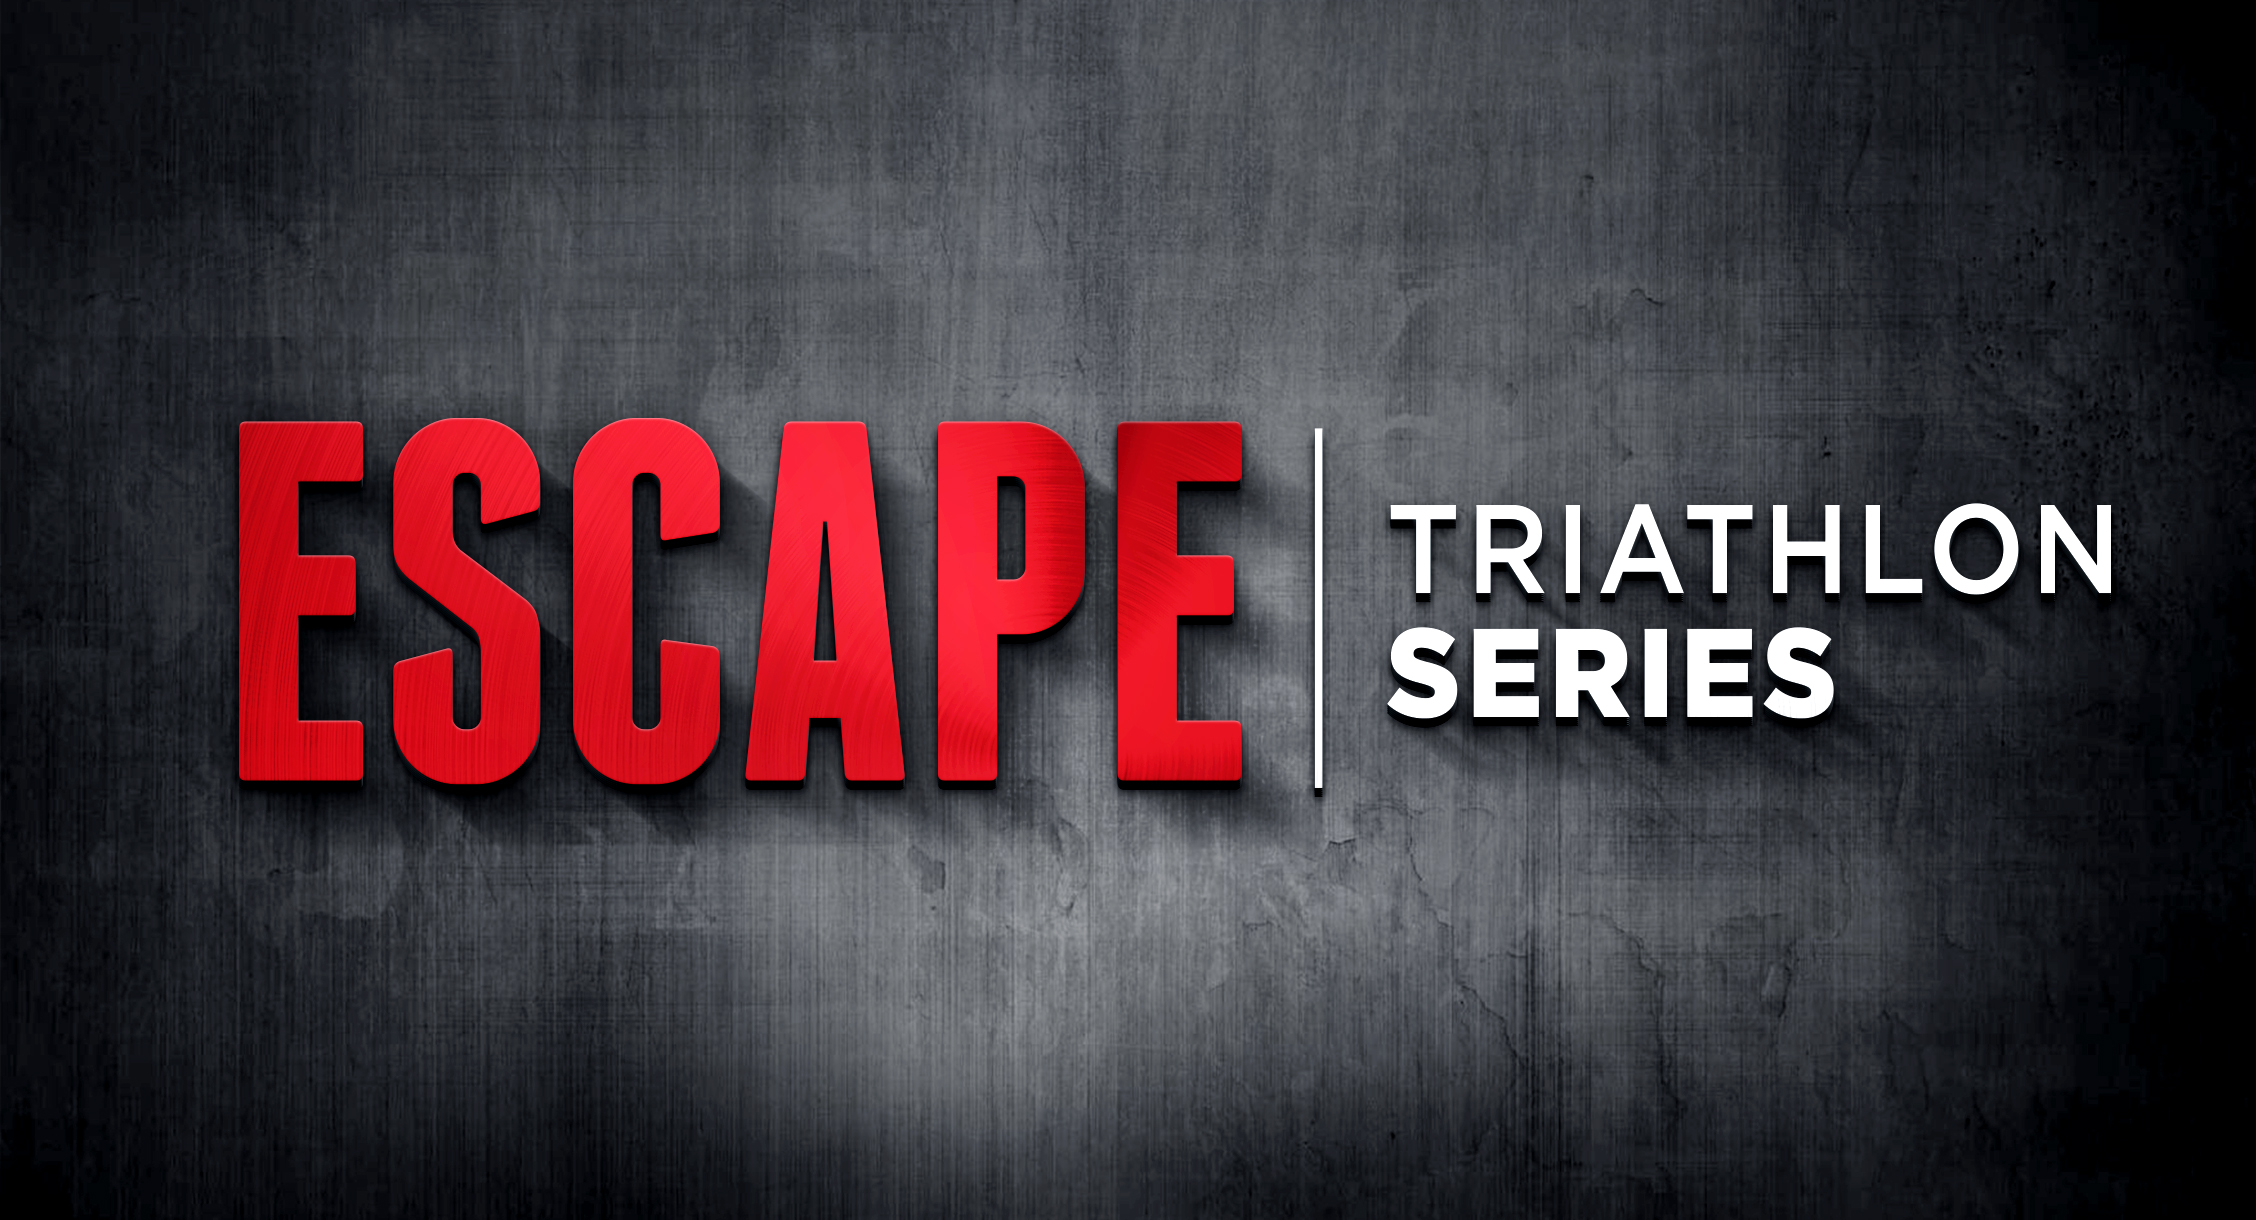 IMG And PEM Launch The Escape Triathlon Series